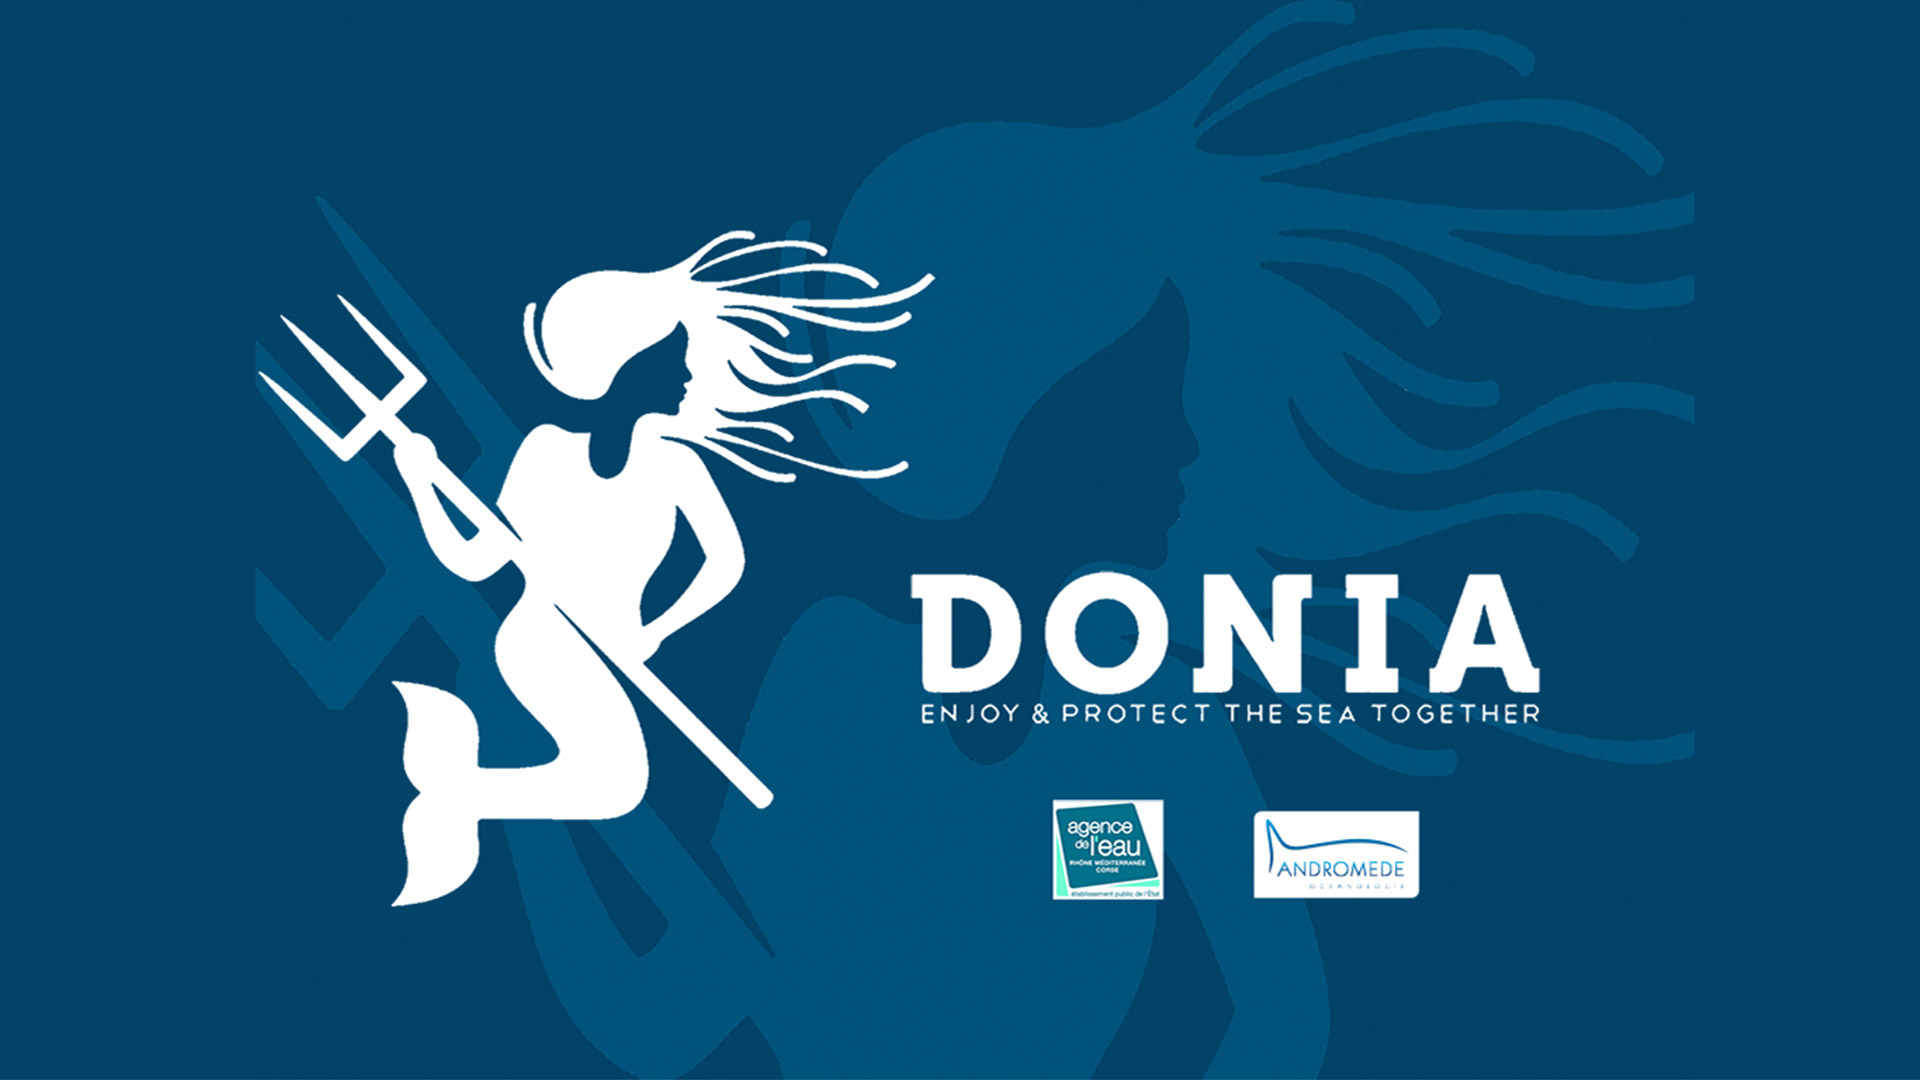 projet donia